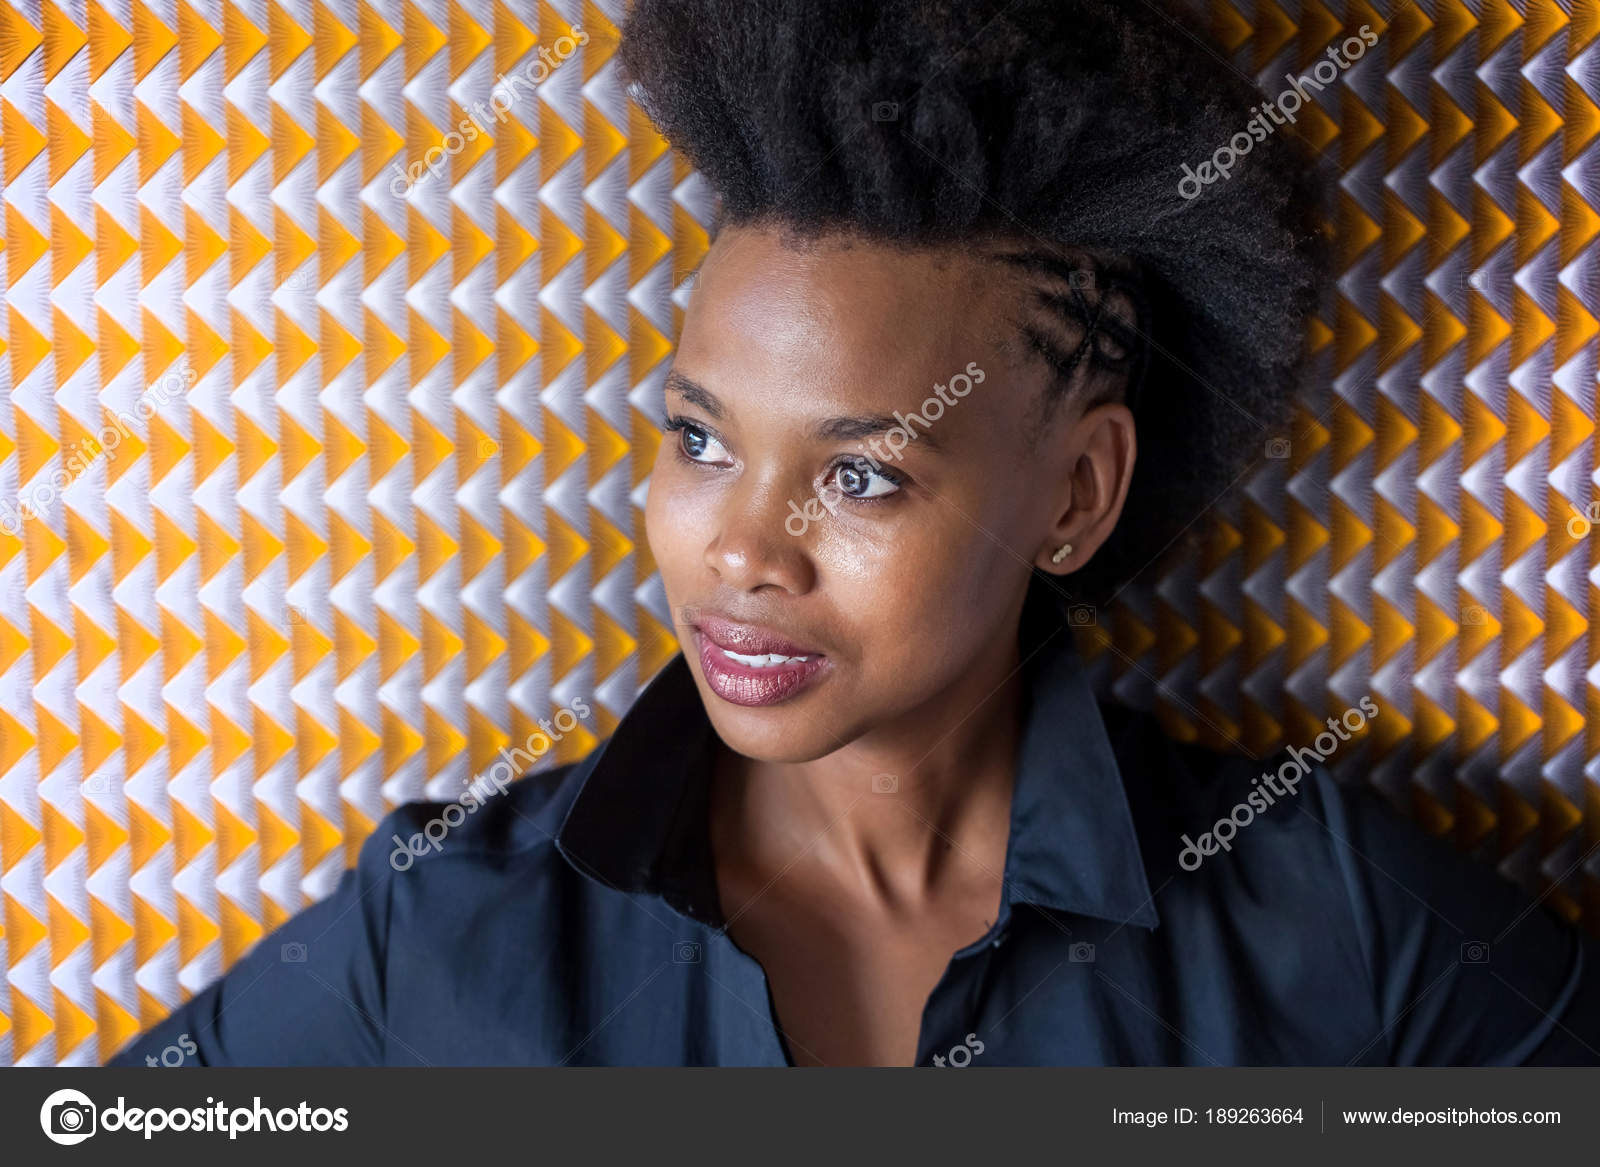 Johannesburg South Africa December 2016 Girl Afro Hairstyle Posing